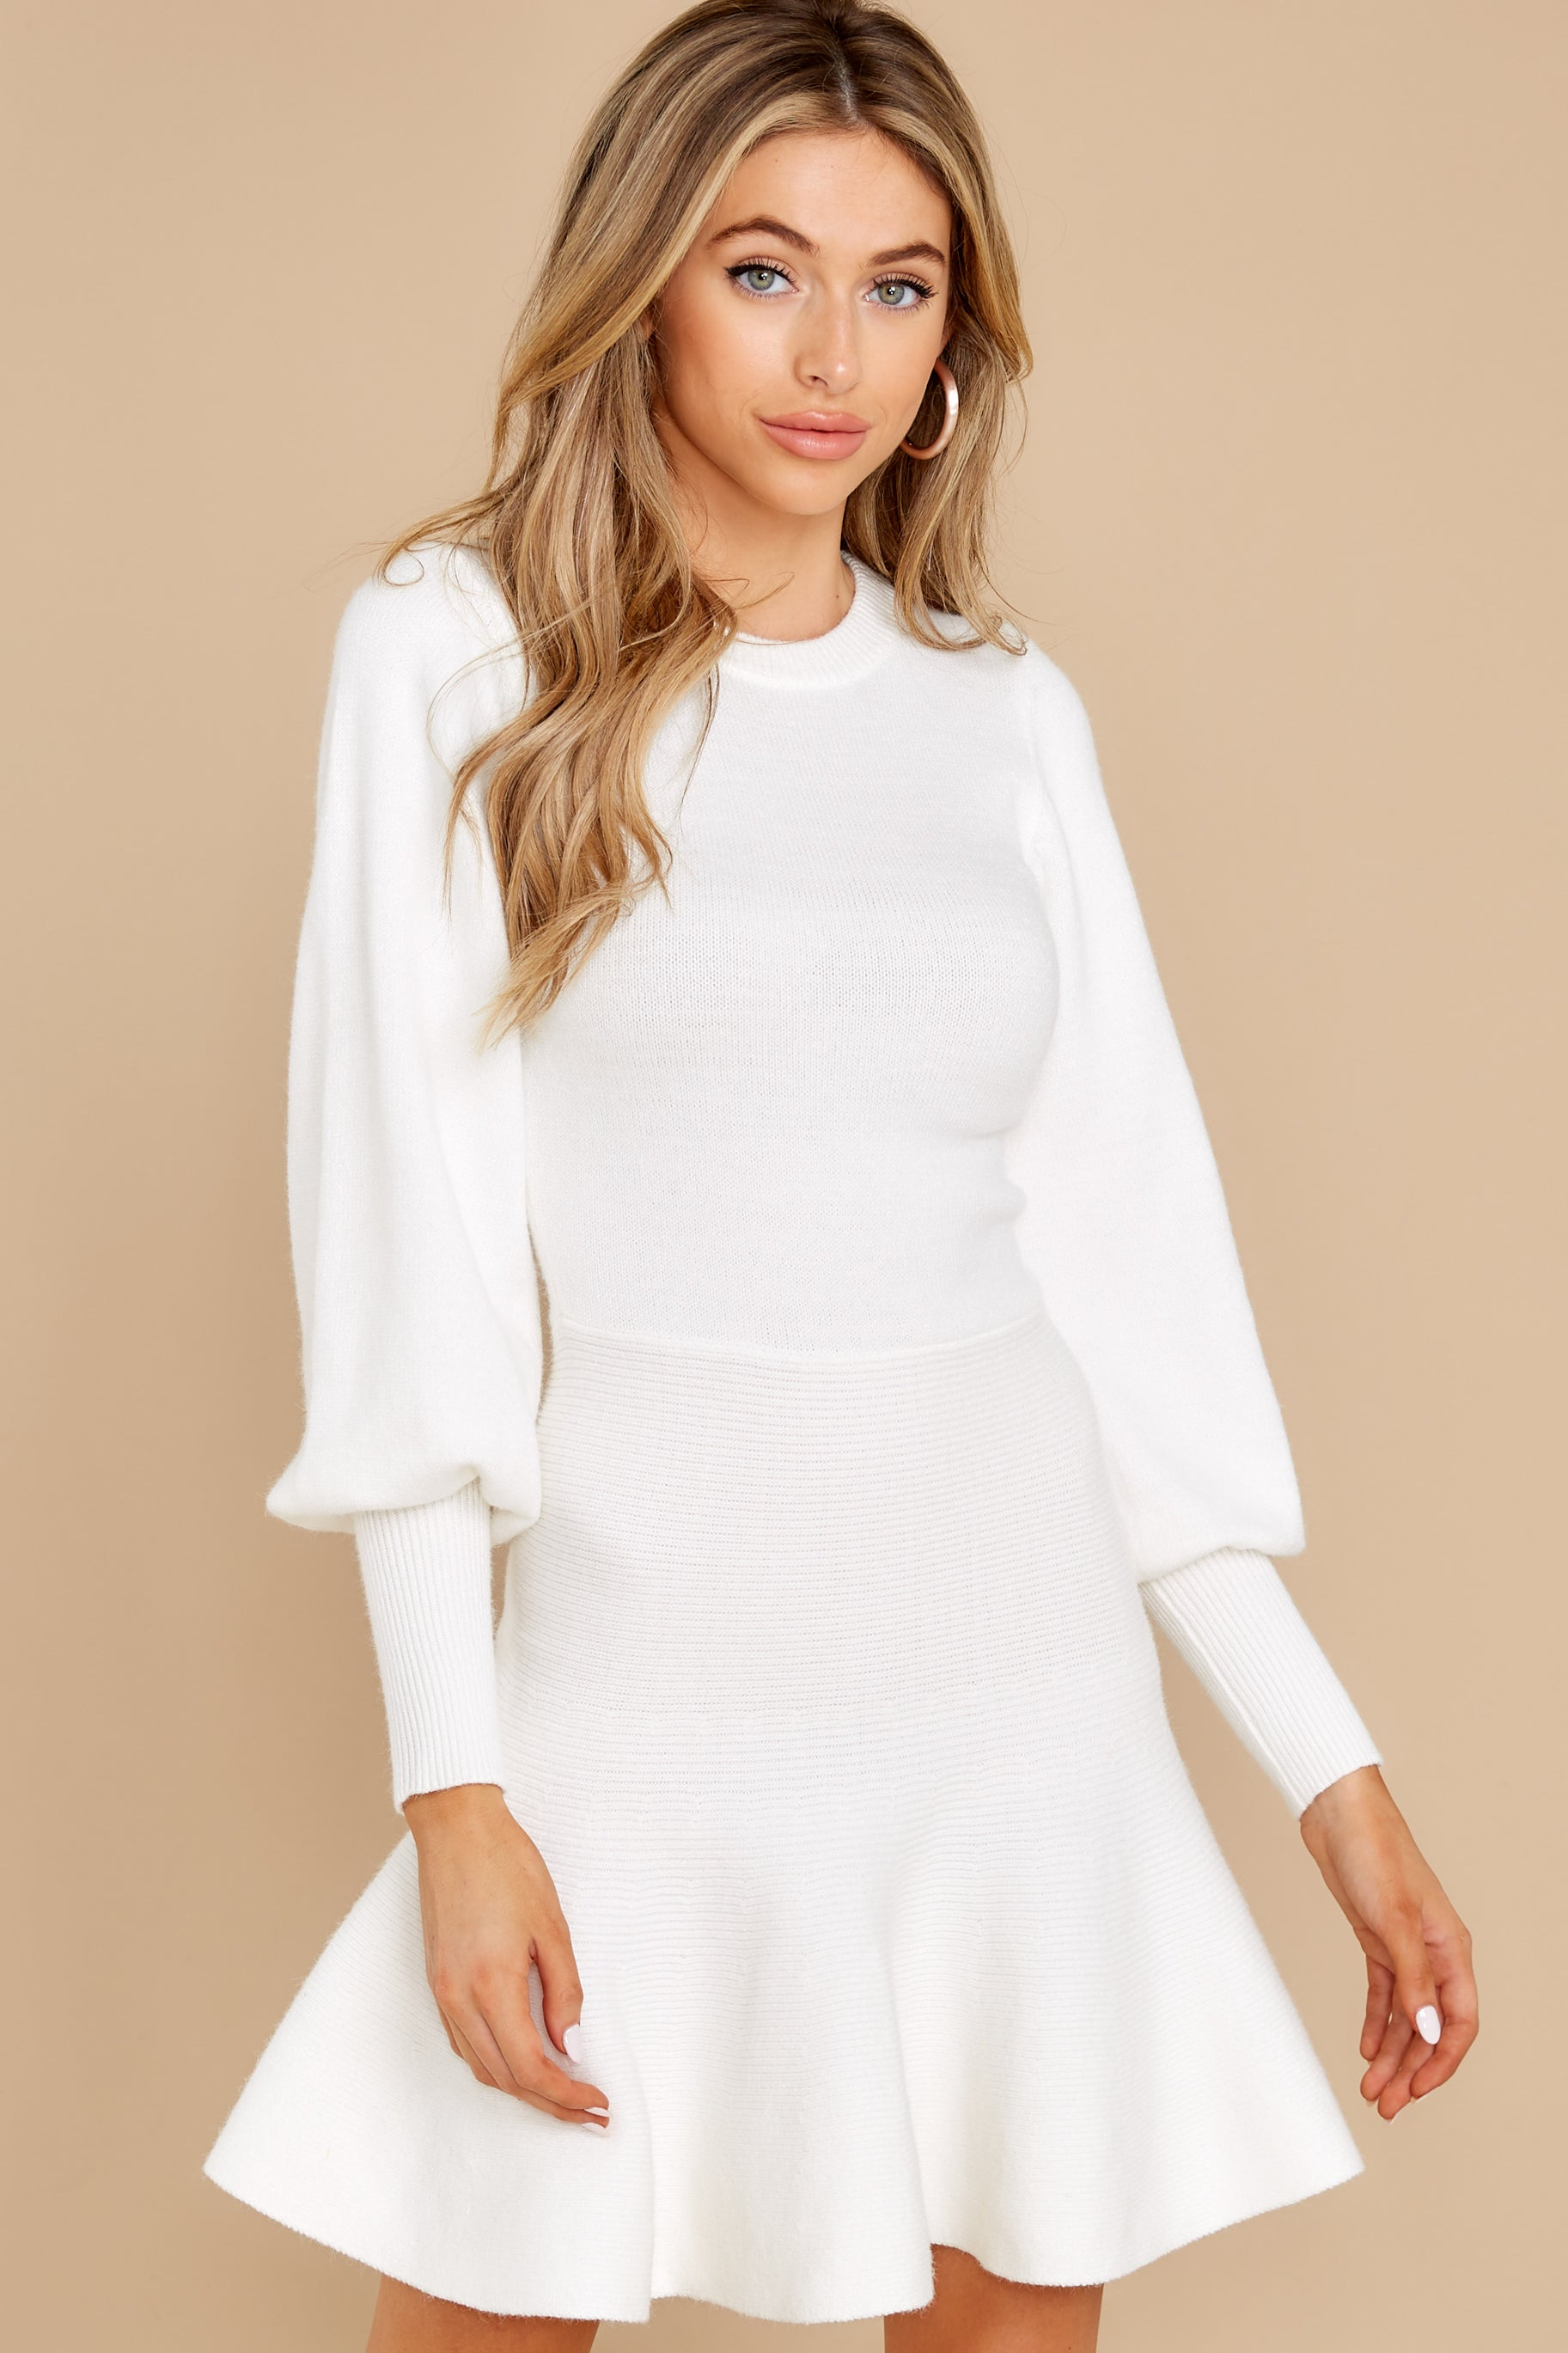 7 Into Me Into You White Sweater Dress at reddress.com